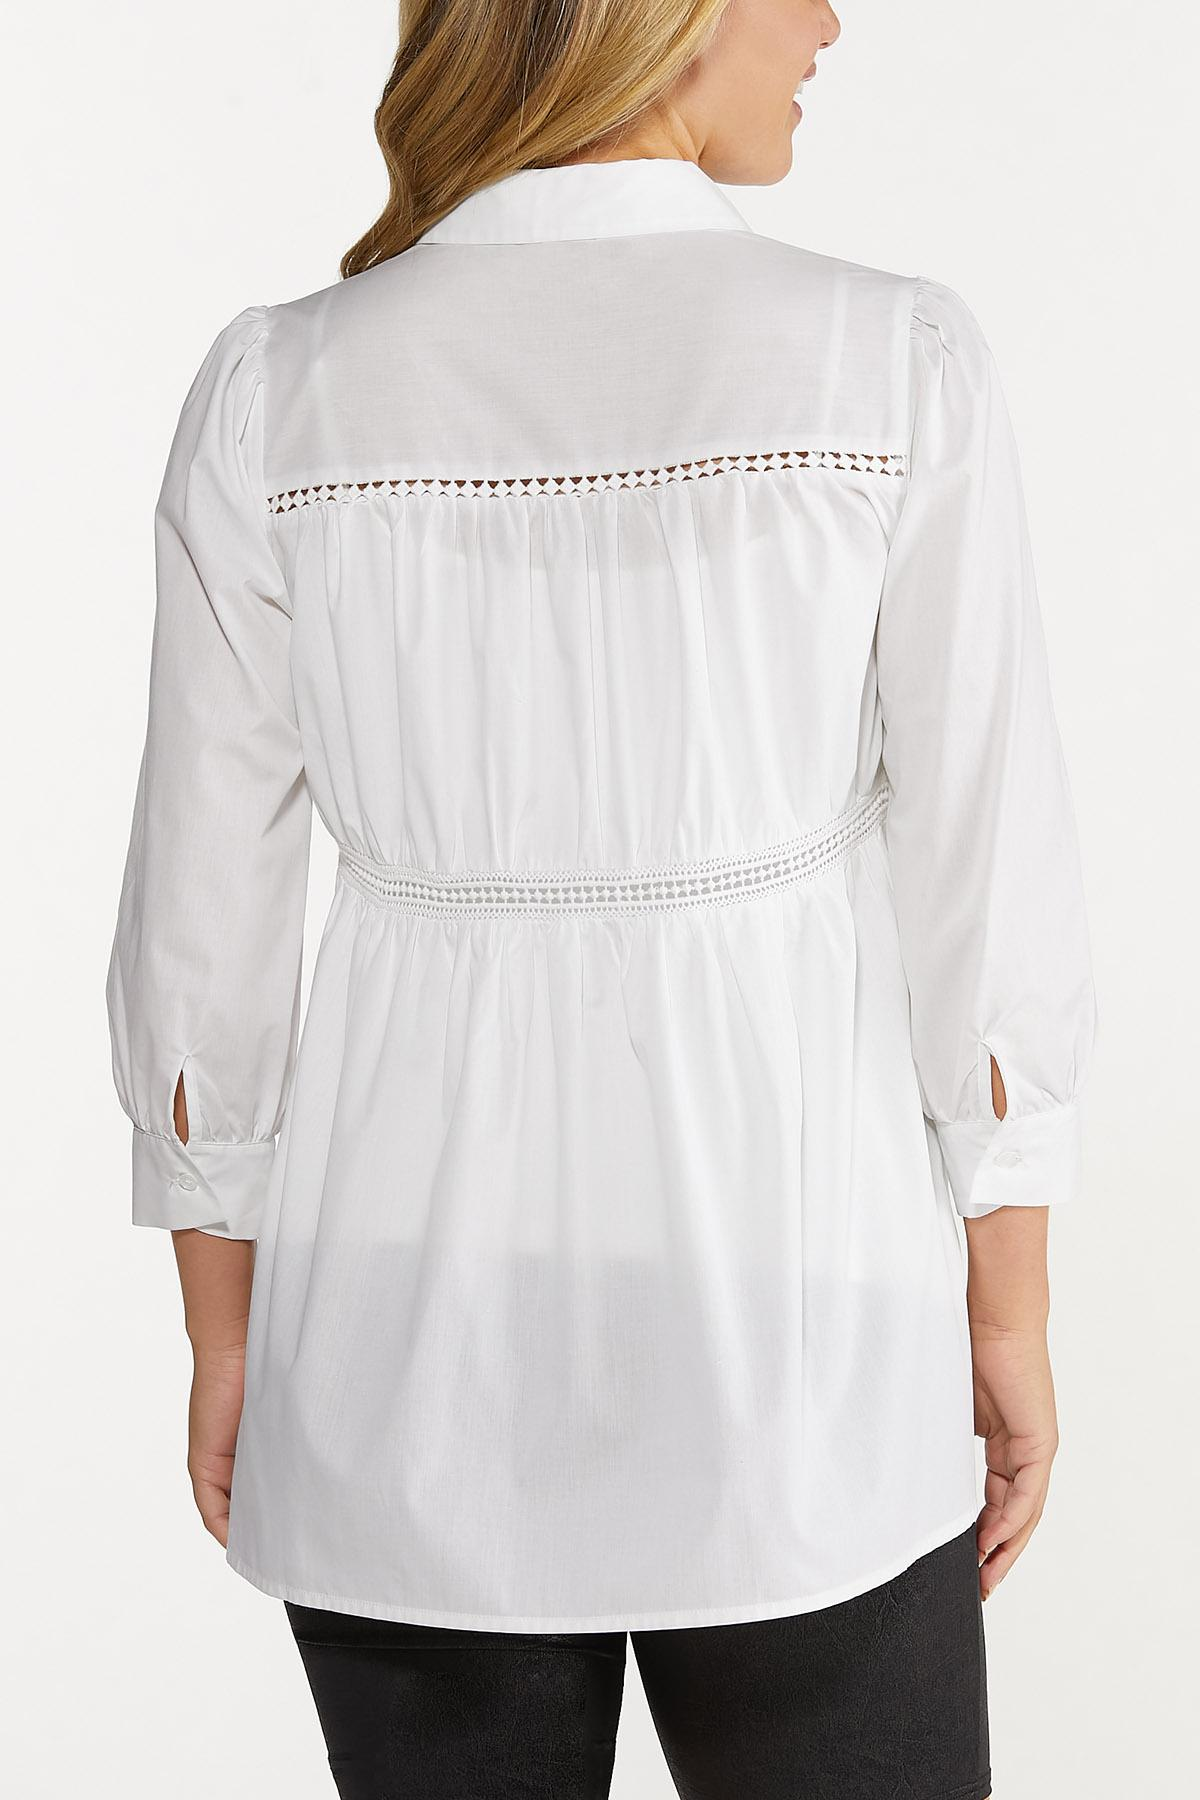 Embroidered Trim Button Tunic (Item #44617843)